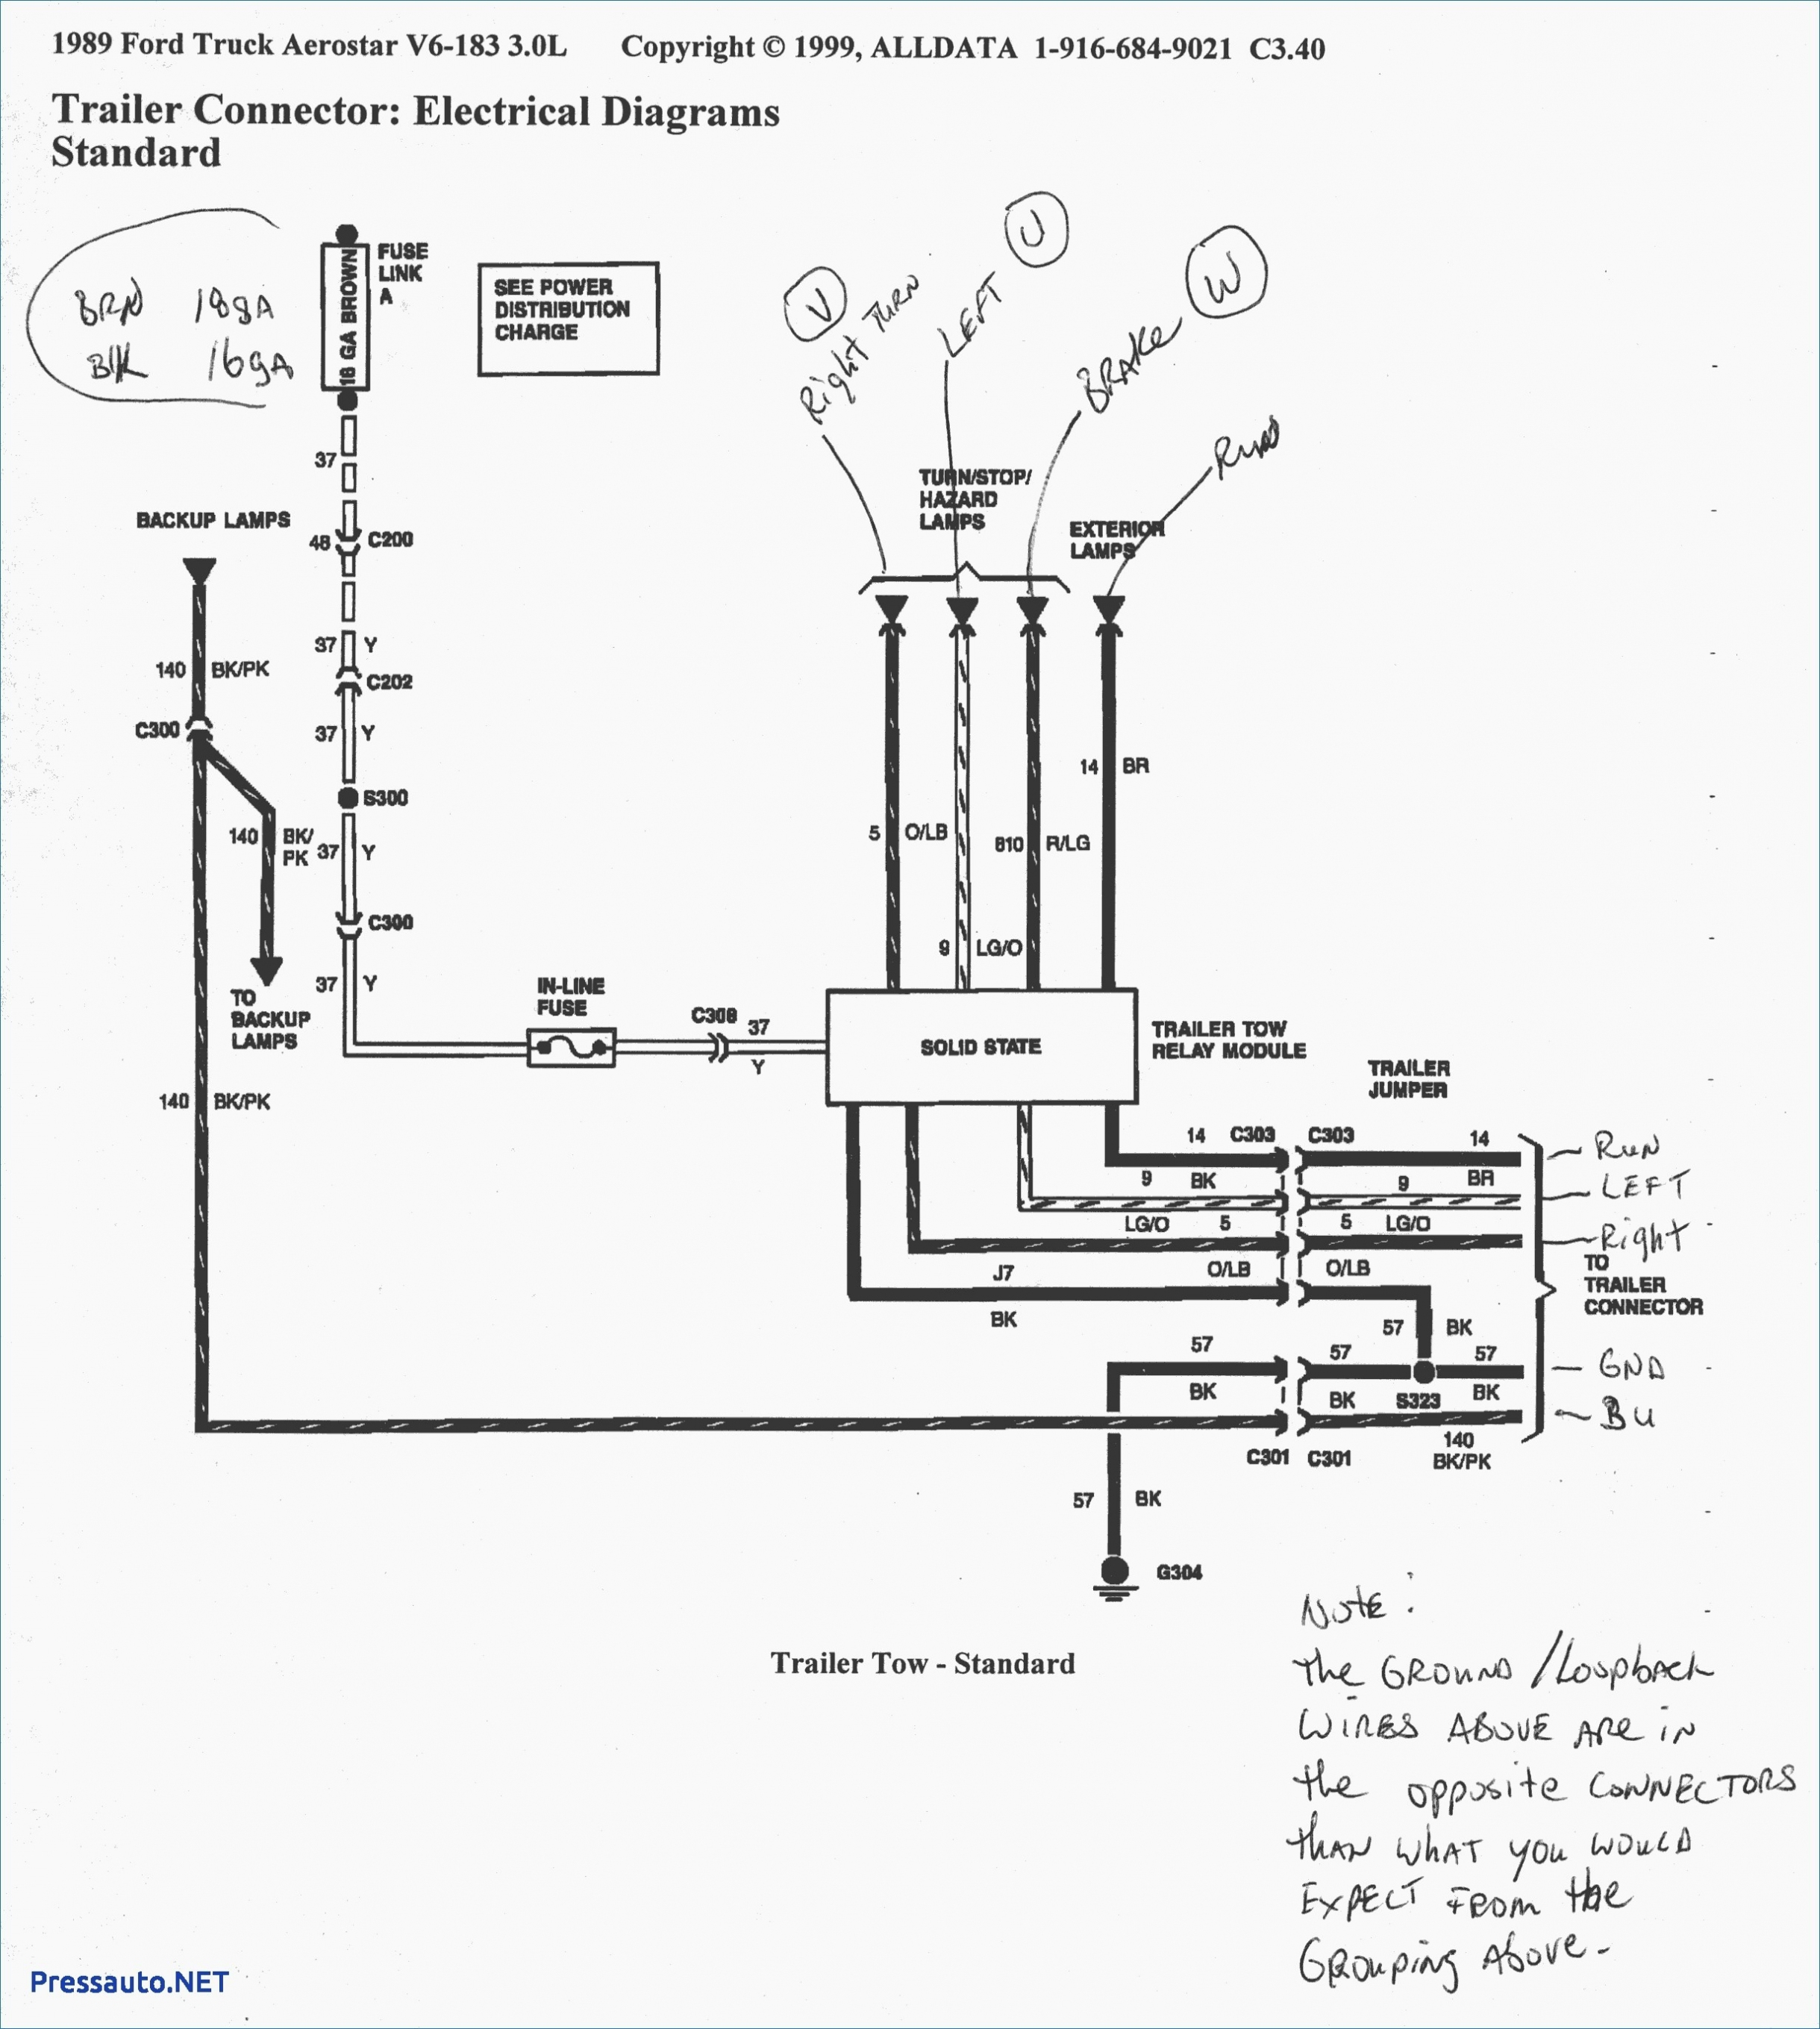 Wiring Diagram For Rockwood Camper | Wiring Diagram - Rockwood Tent Trailer Wiring Diagram